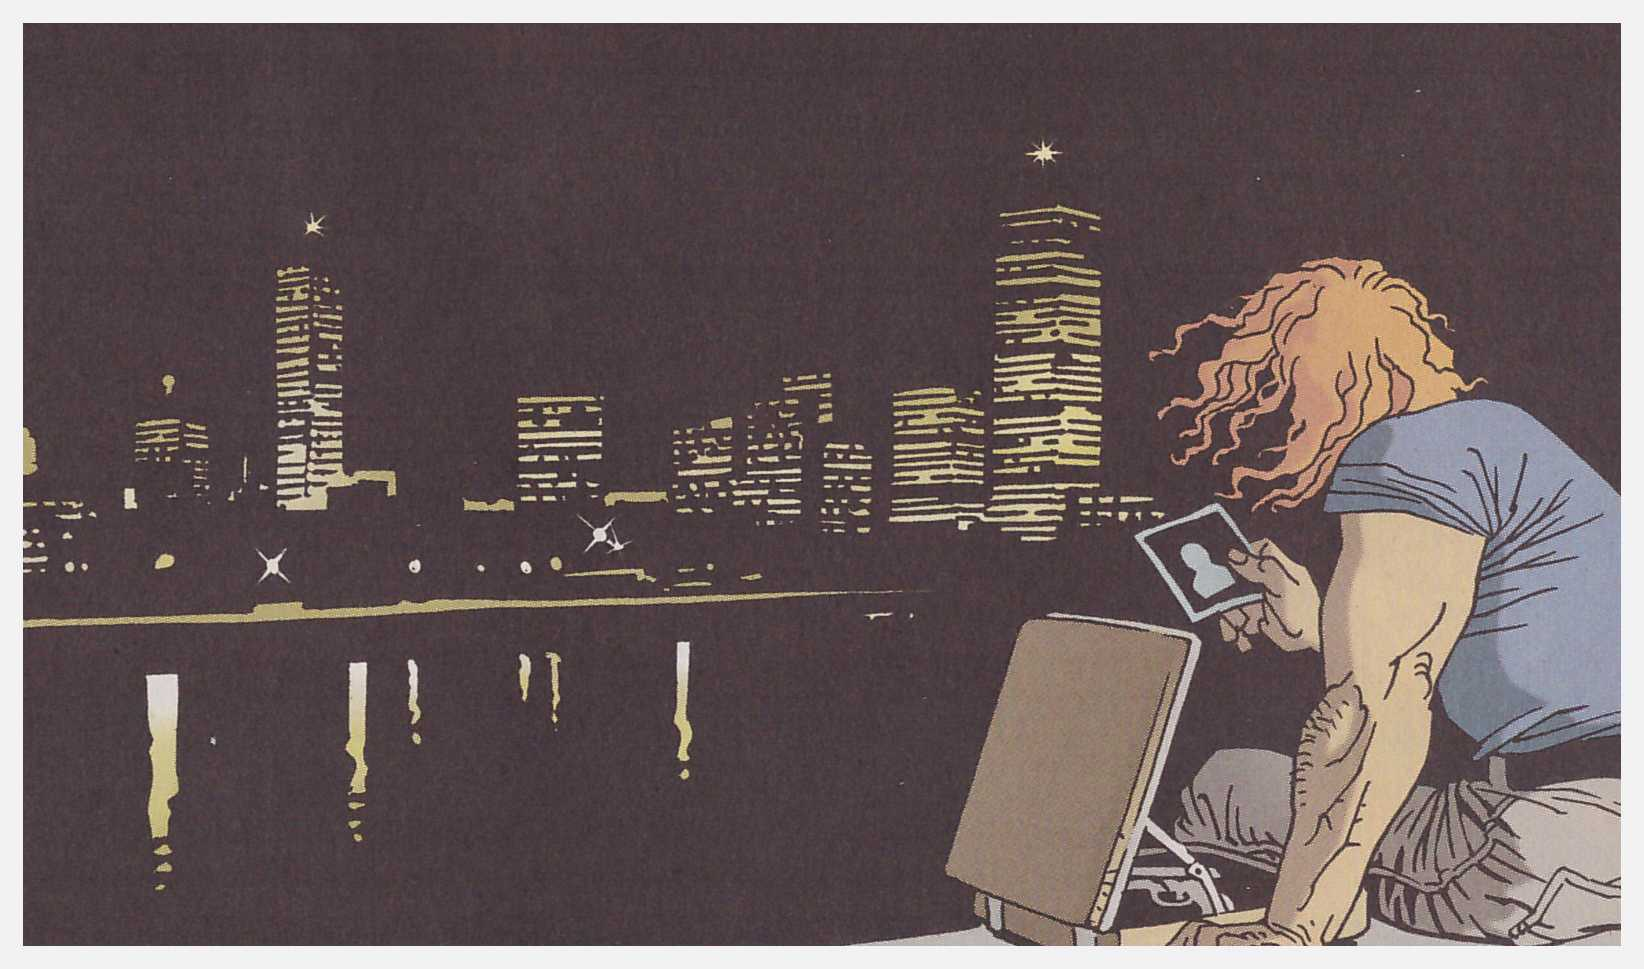 100 Bullets The Deluxe Edition volume 2 review